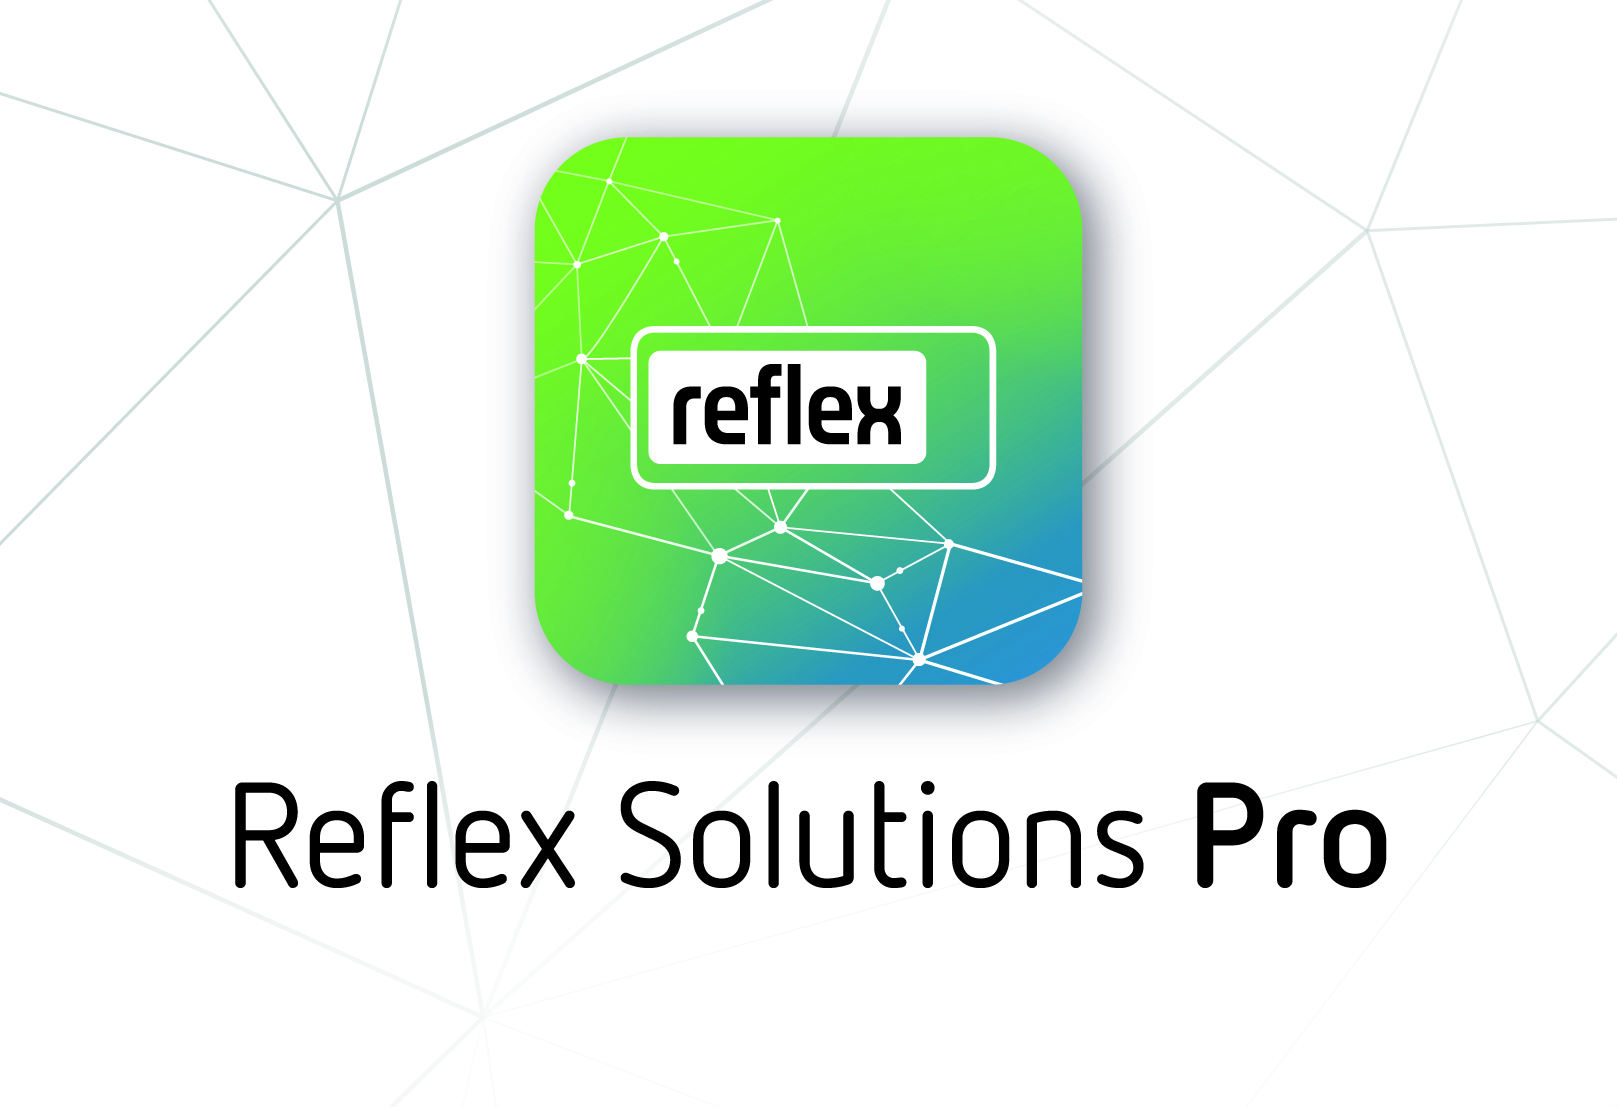 reflex4experts: Nun auch mit Reflex Solutions Pro Training